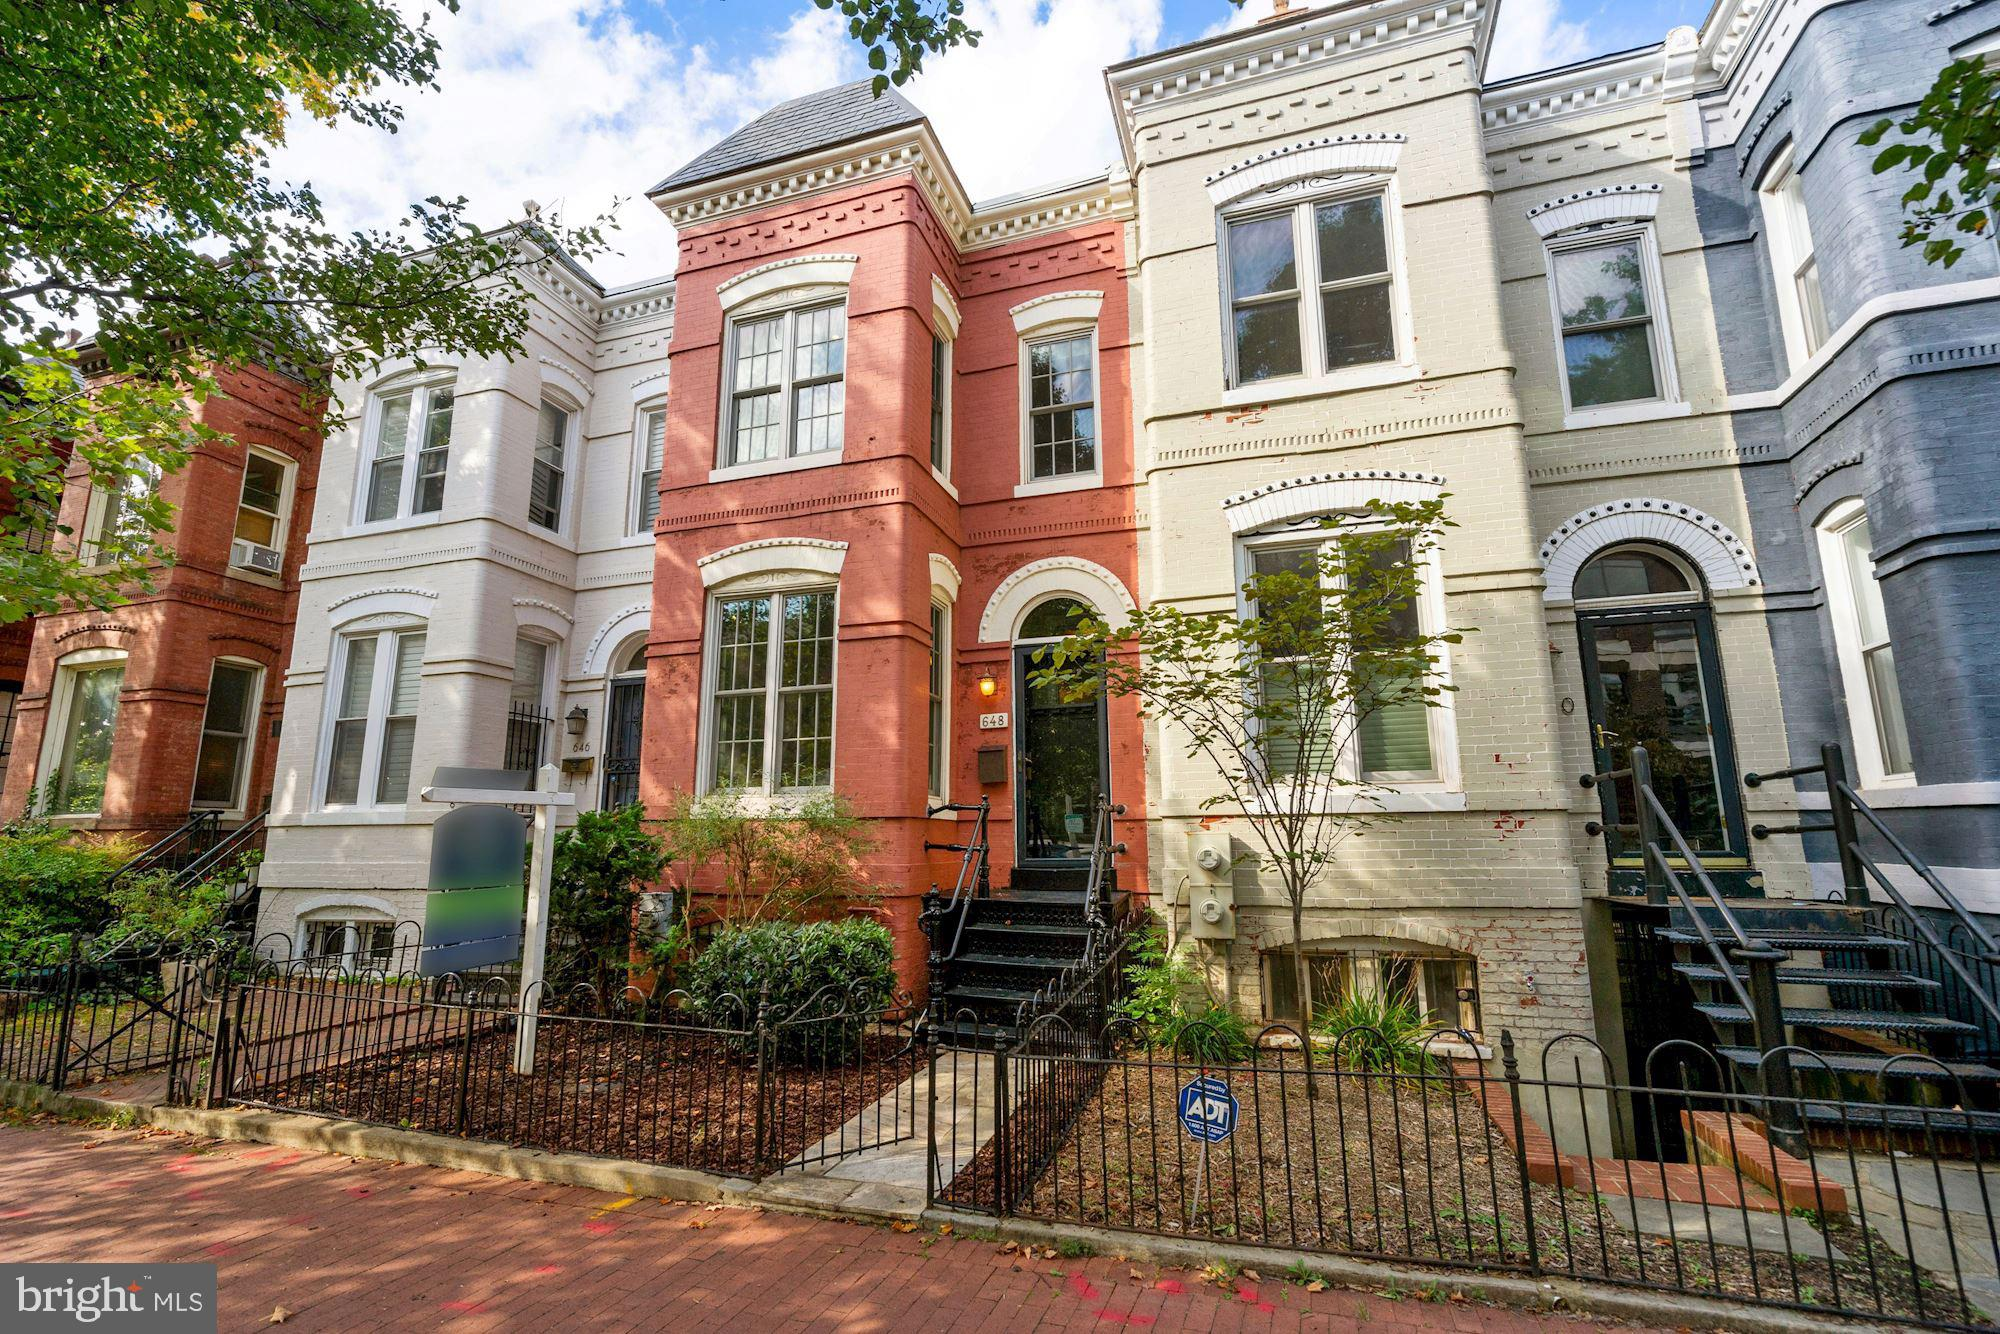 Welcome Home to Capitol Hill! This newly available, federal style, bow-front row home at 648 G Street NE is conveniently located between Stanton Park and the H Street corridor. It's just a few short blocks from Union Station, Whole Foods, Giant, Union Kitchen Grocery and some of the best shops and restaurants in DC. A 3-level, all brick home, it features 3 bedrooms and 2.5 baths with secure off-street parking and a deep backyard. An entertainer's dream, you can host friends and family for appetizers before heading out on the town. Or accommodate a large fete in your home's main level and backyard.  As you enter the front gate of this home, you'll appreciate its charm. From its classic entry foyer and 9-foot ceilings to its wood-burning fireplace, hardwood floors and sunny bow-front windows, this home is sure to please. With an open living and dining space, the flow is terrific. Just past the powder room is the renovated shaker-style kitchen with newer cabinets, stainless appliances (including a gas range with double ovens), quartz counters and tile floor. If your party is large enough or if you'd just like to dine al fresco, enjoy the spacious stained deck and patio just off the kitchen. Whether it's to barbecue, enjoy your morning coffee or you just need a break between zoom calls, this rear garden is the perfect feature. And just beyond the back fence is secured parking. The rolltop garage door was installed in 2017. Upstairs with hardwood floors continuing throughout, you'll find a large Owner's suite with sunny sitting space, plentiful storage and a renovated en suite bath with heated floors, frameless glass shower enclosure and dual sinks. There are 2 guest bedrooms as well and an updated hall bath with jetted tub. The lower level houses the laundry area. It is unfinished and ready for your designs.  Beyond its charm, this home has practical and money-saving features such as newer windows, updated roofing, tankless water heater, a French drain, a new dishwasher